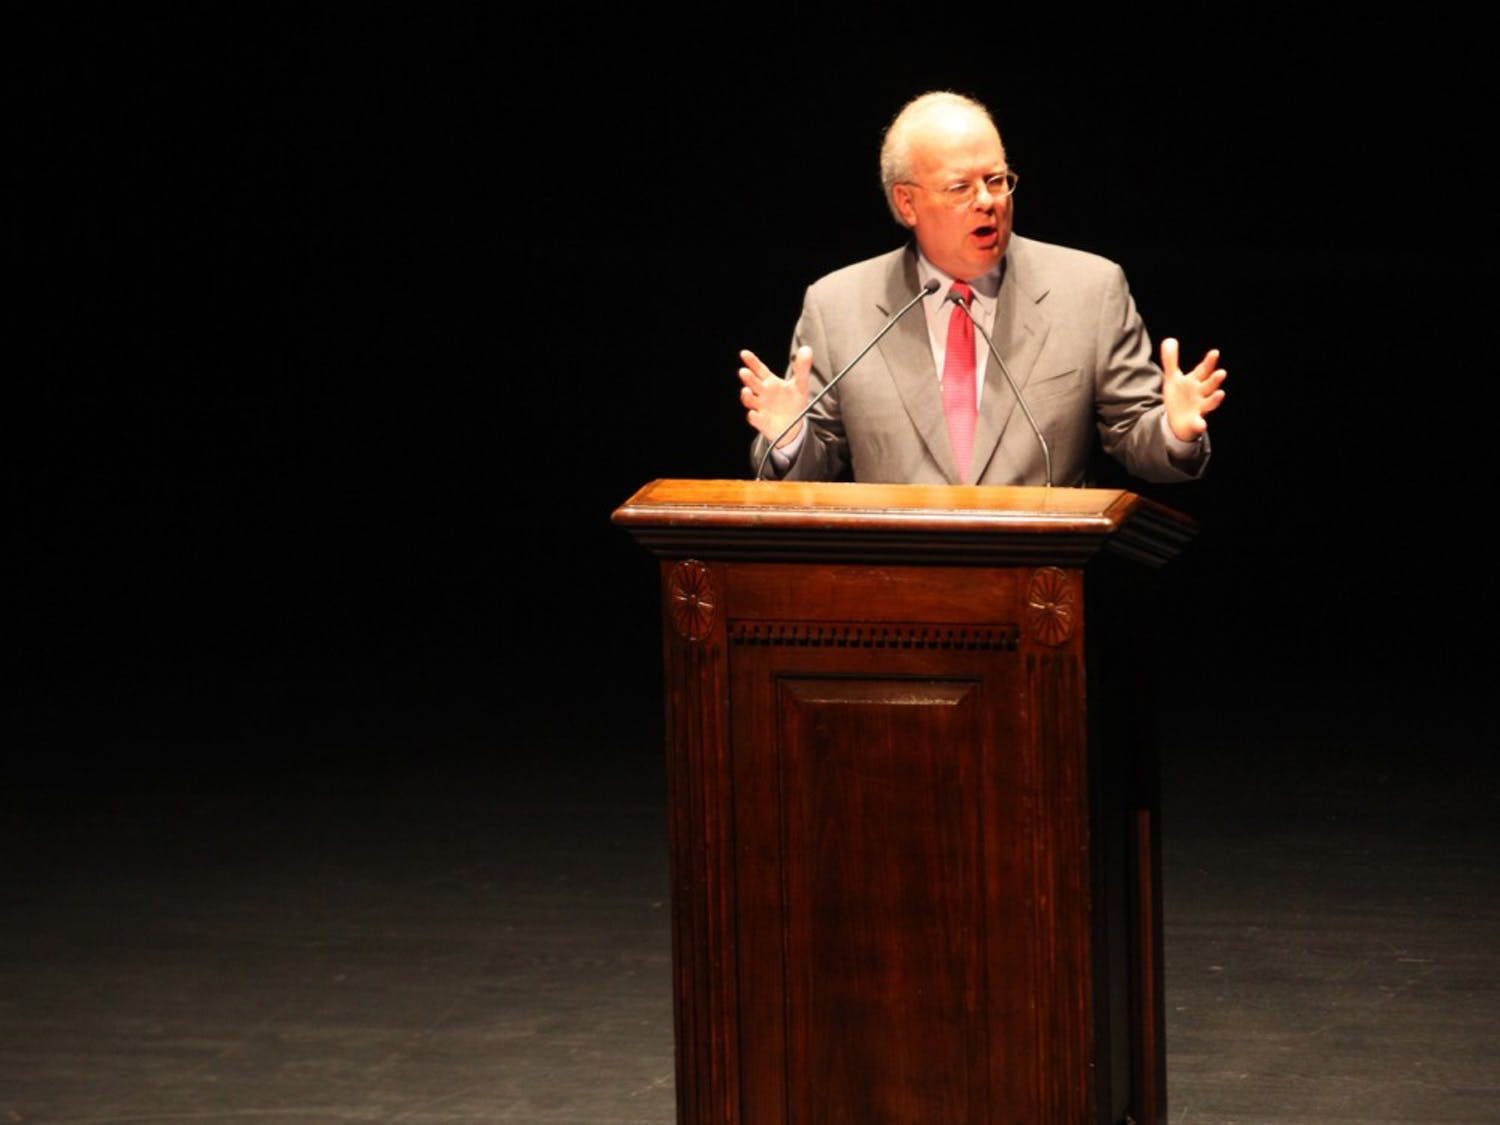 Karl Rove, adviser to former President George W. Bush, speaks at Memorial Hall Monday. The event was sponsored by UNC College Republicans.